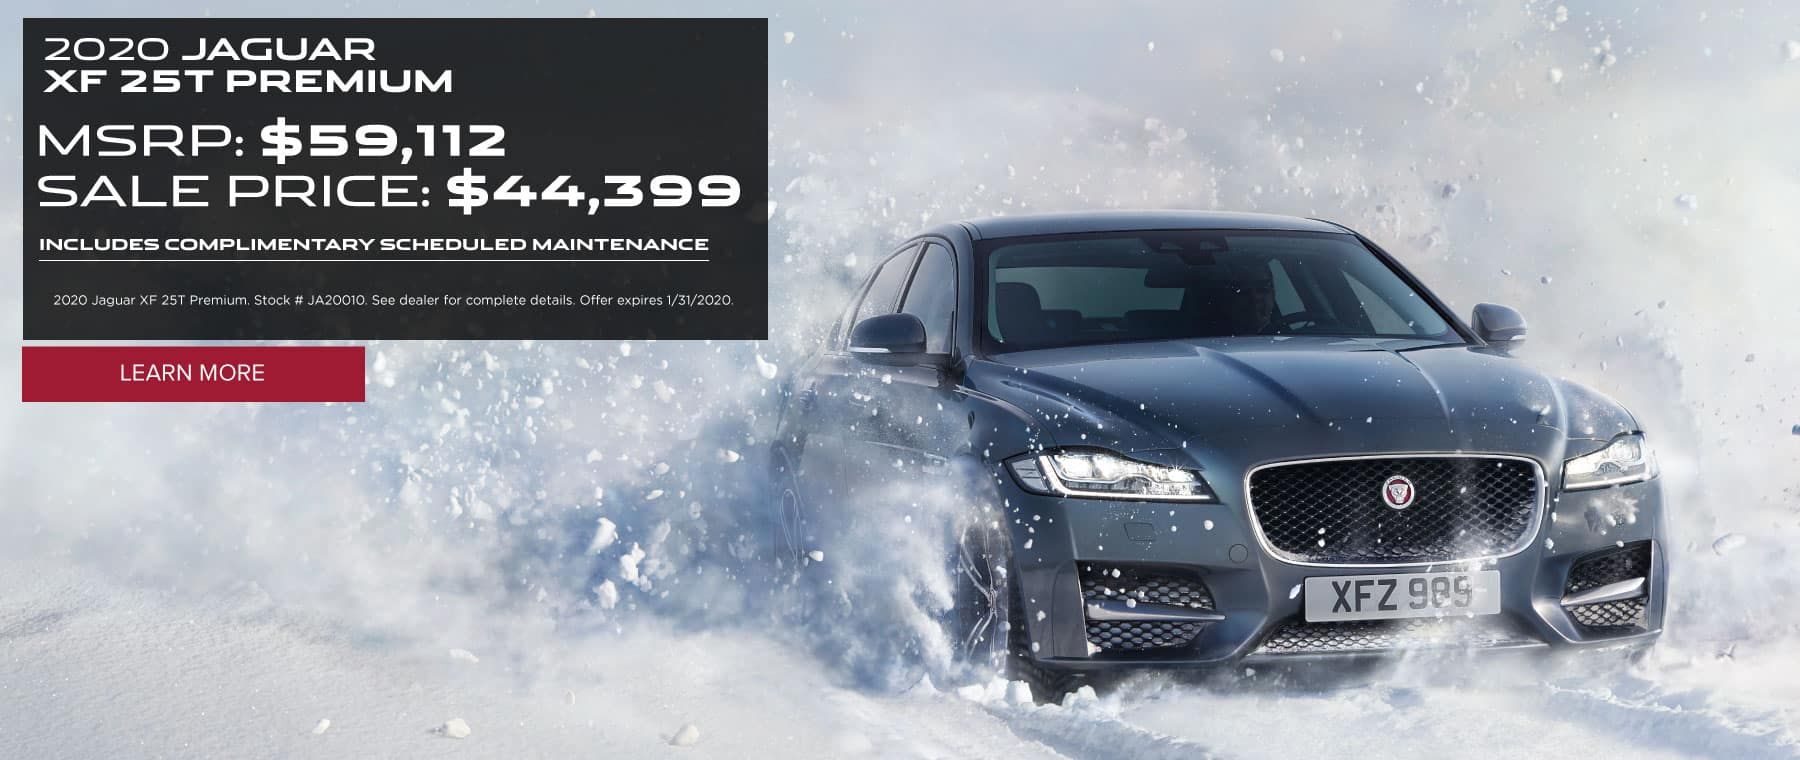 2020 JAGUAR XF 25T PREMIUM MSRP: $59,112 SALE PRICE: $44,399 INCLUDES COMPLIMENTARY SCHEDULED MAINTENANCE 2020 Jaguar XF 25T Premium. Stock # JA20010. See dealer for complete details. Offer expires 1/31/2020.  Click to learn more. Dark Grey XF driving through snow.